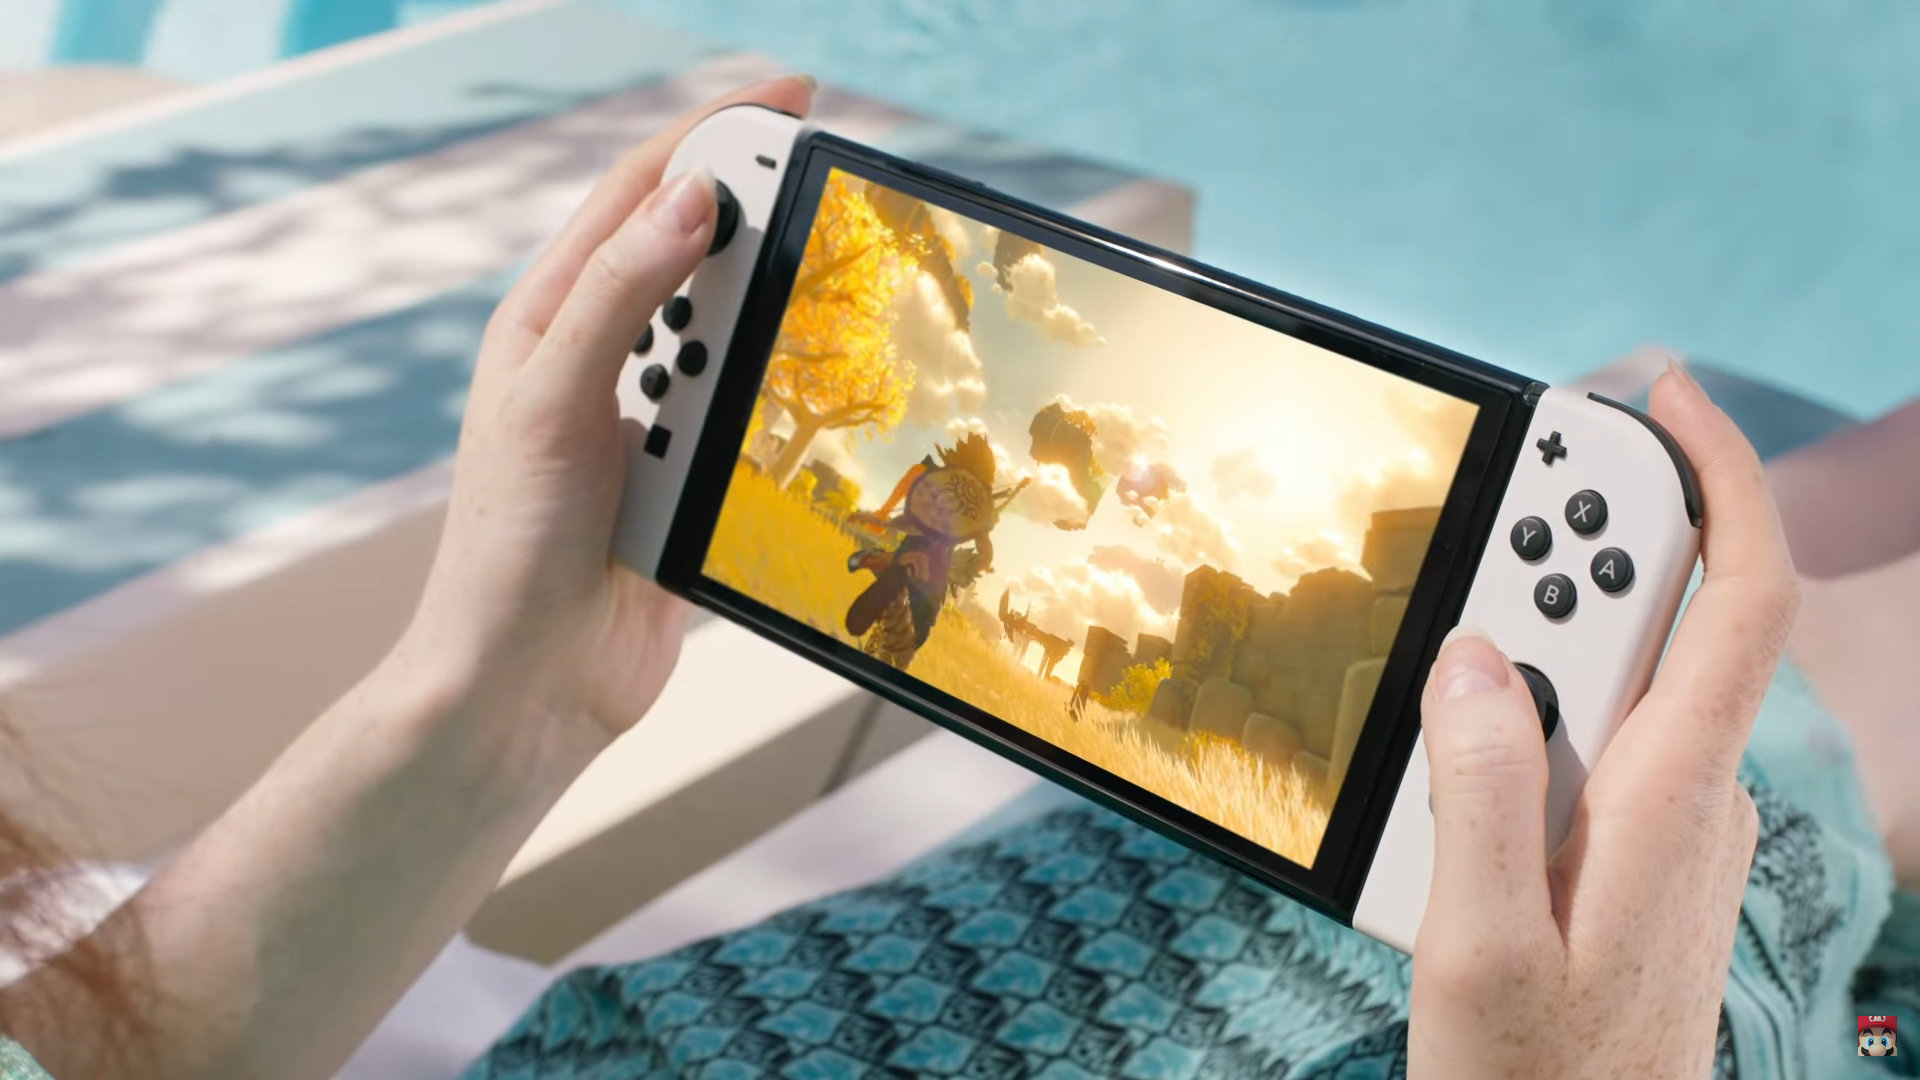 Can the Nintendo Switch OLED compete with the rise in handheld gaming PCs?